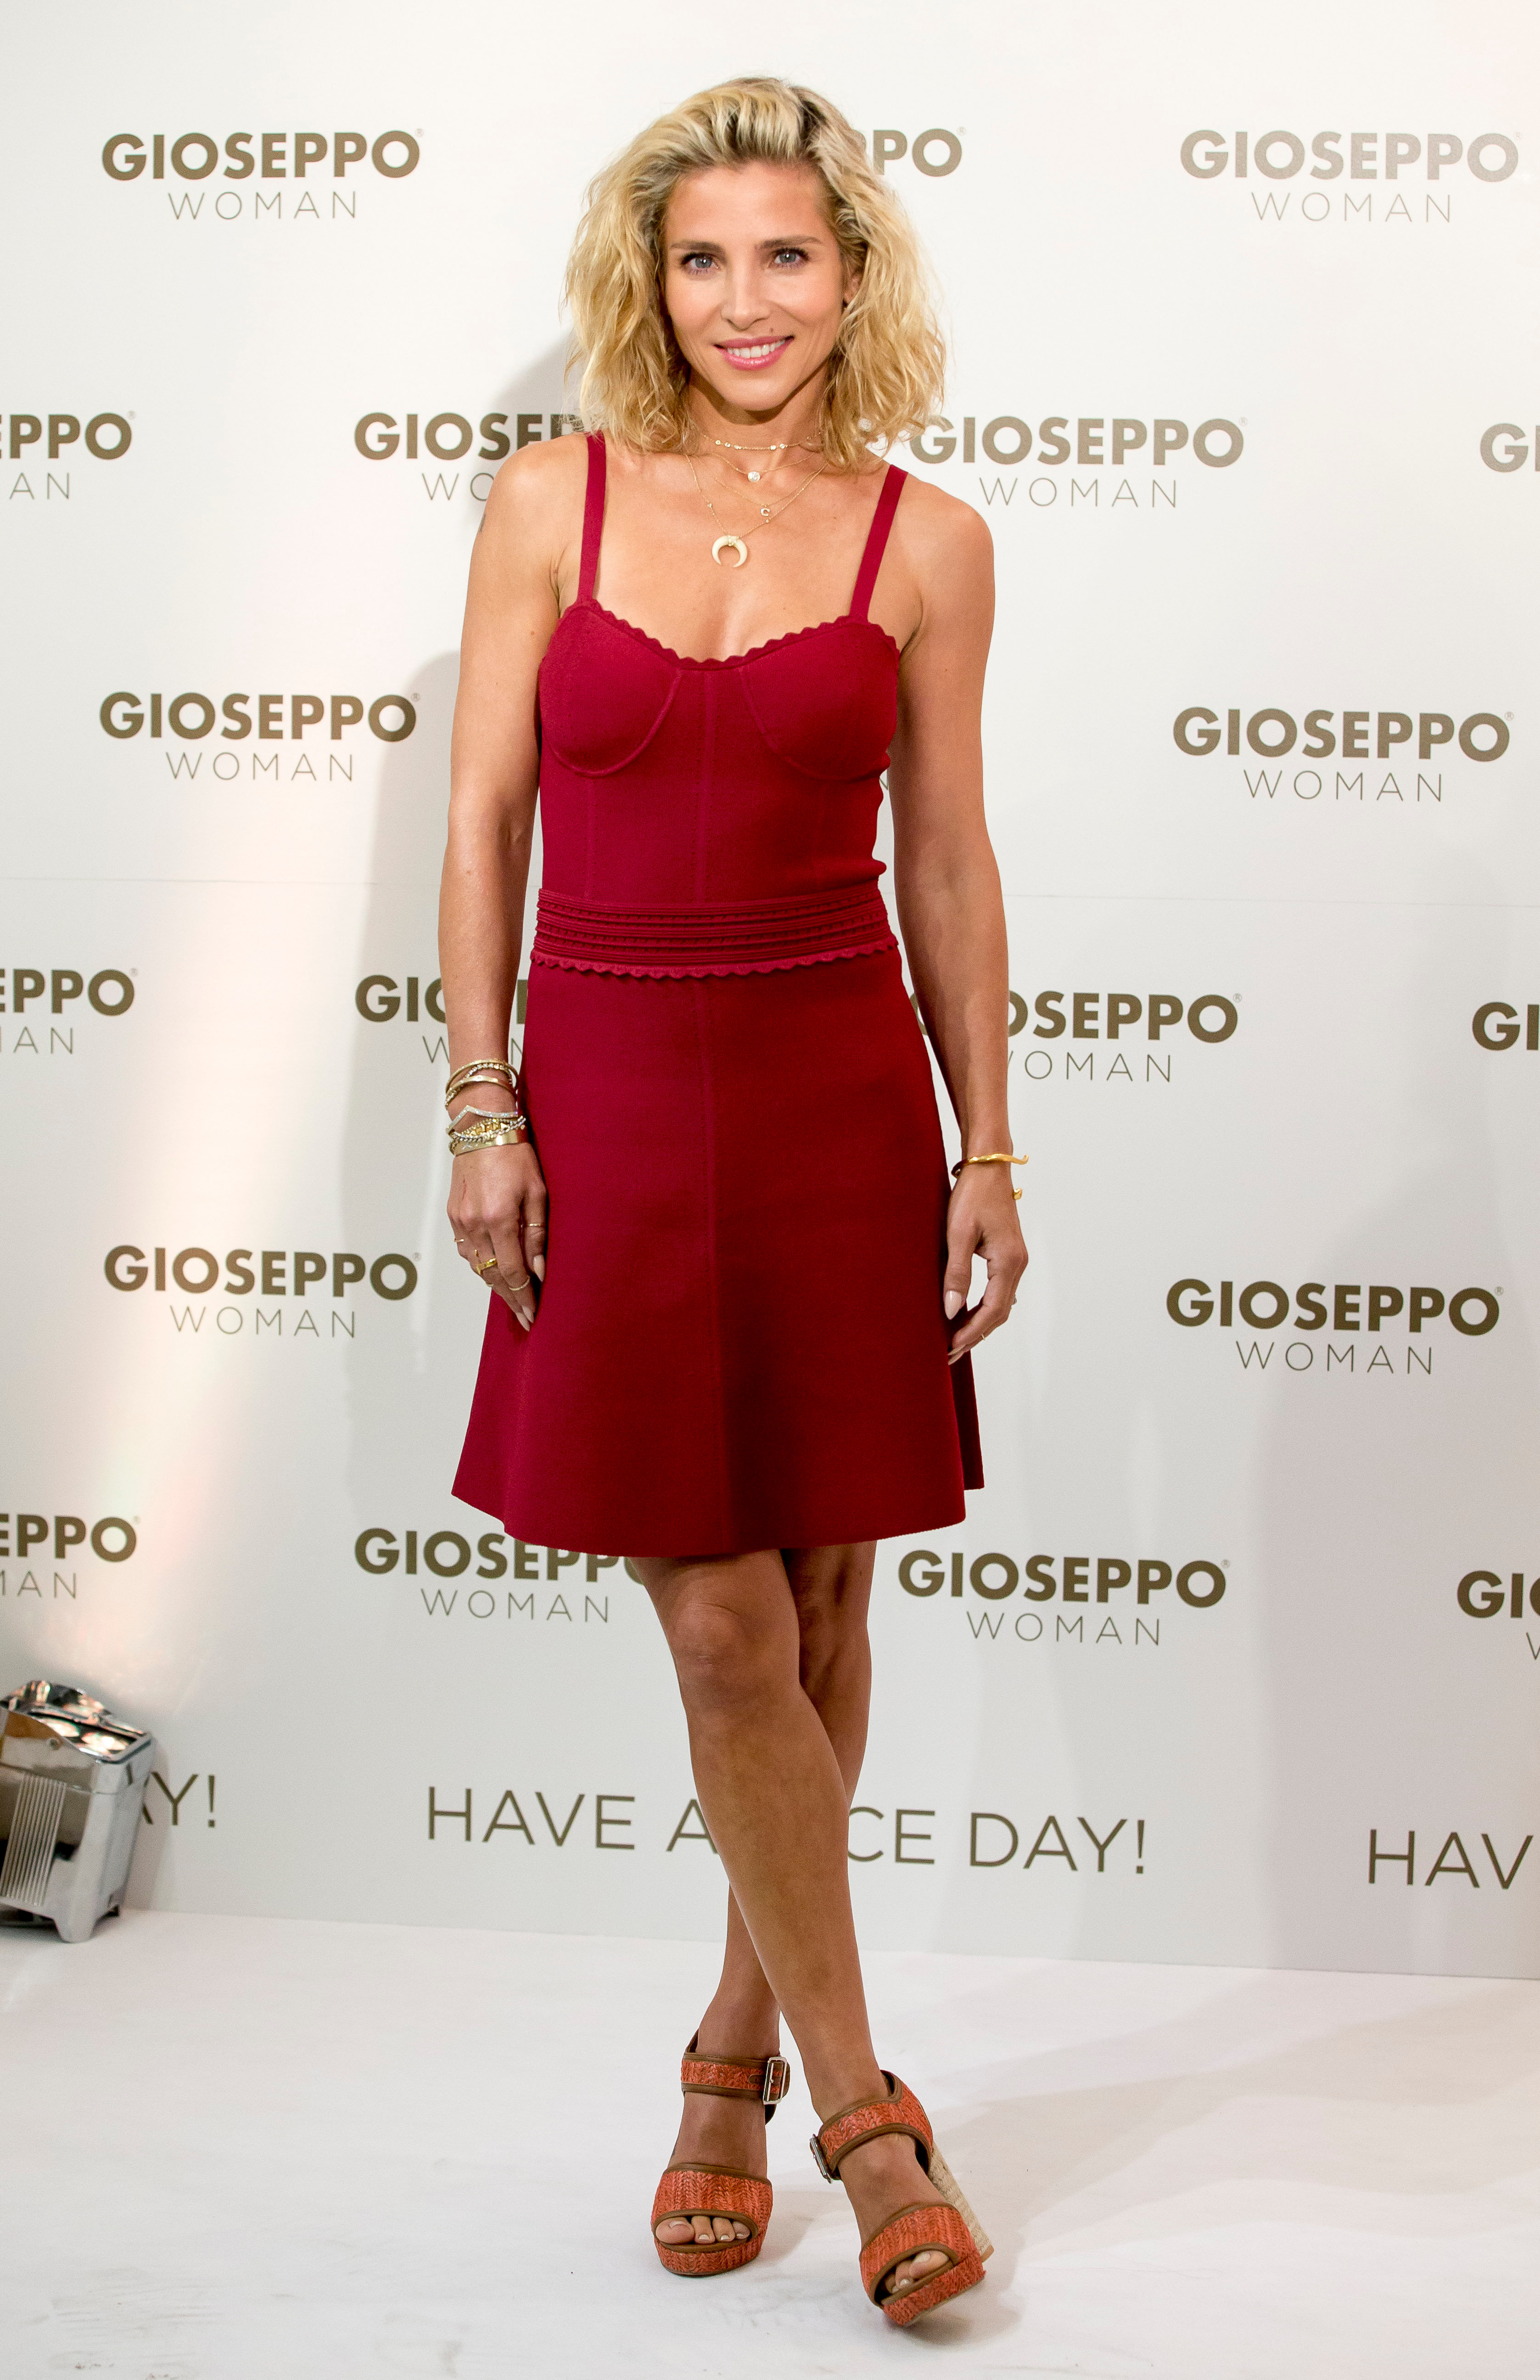 Elsa Pataky attends the Gioseppo Woman spring summer collection launch in Madrid, Spain, on May 11, 2018.